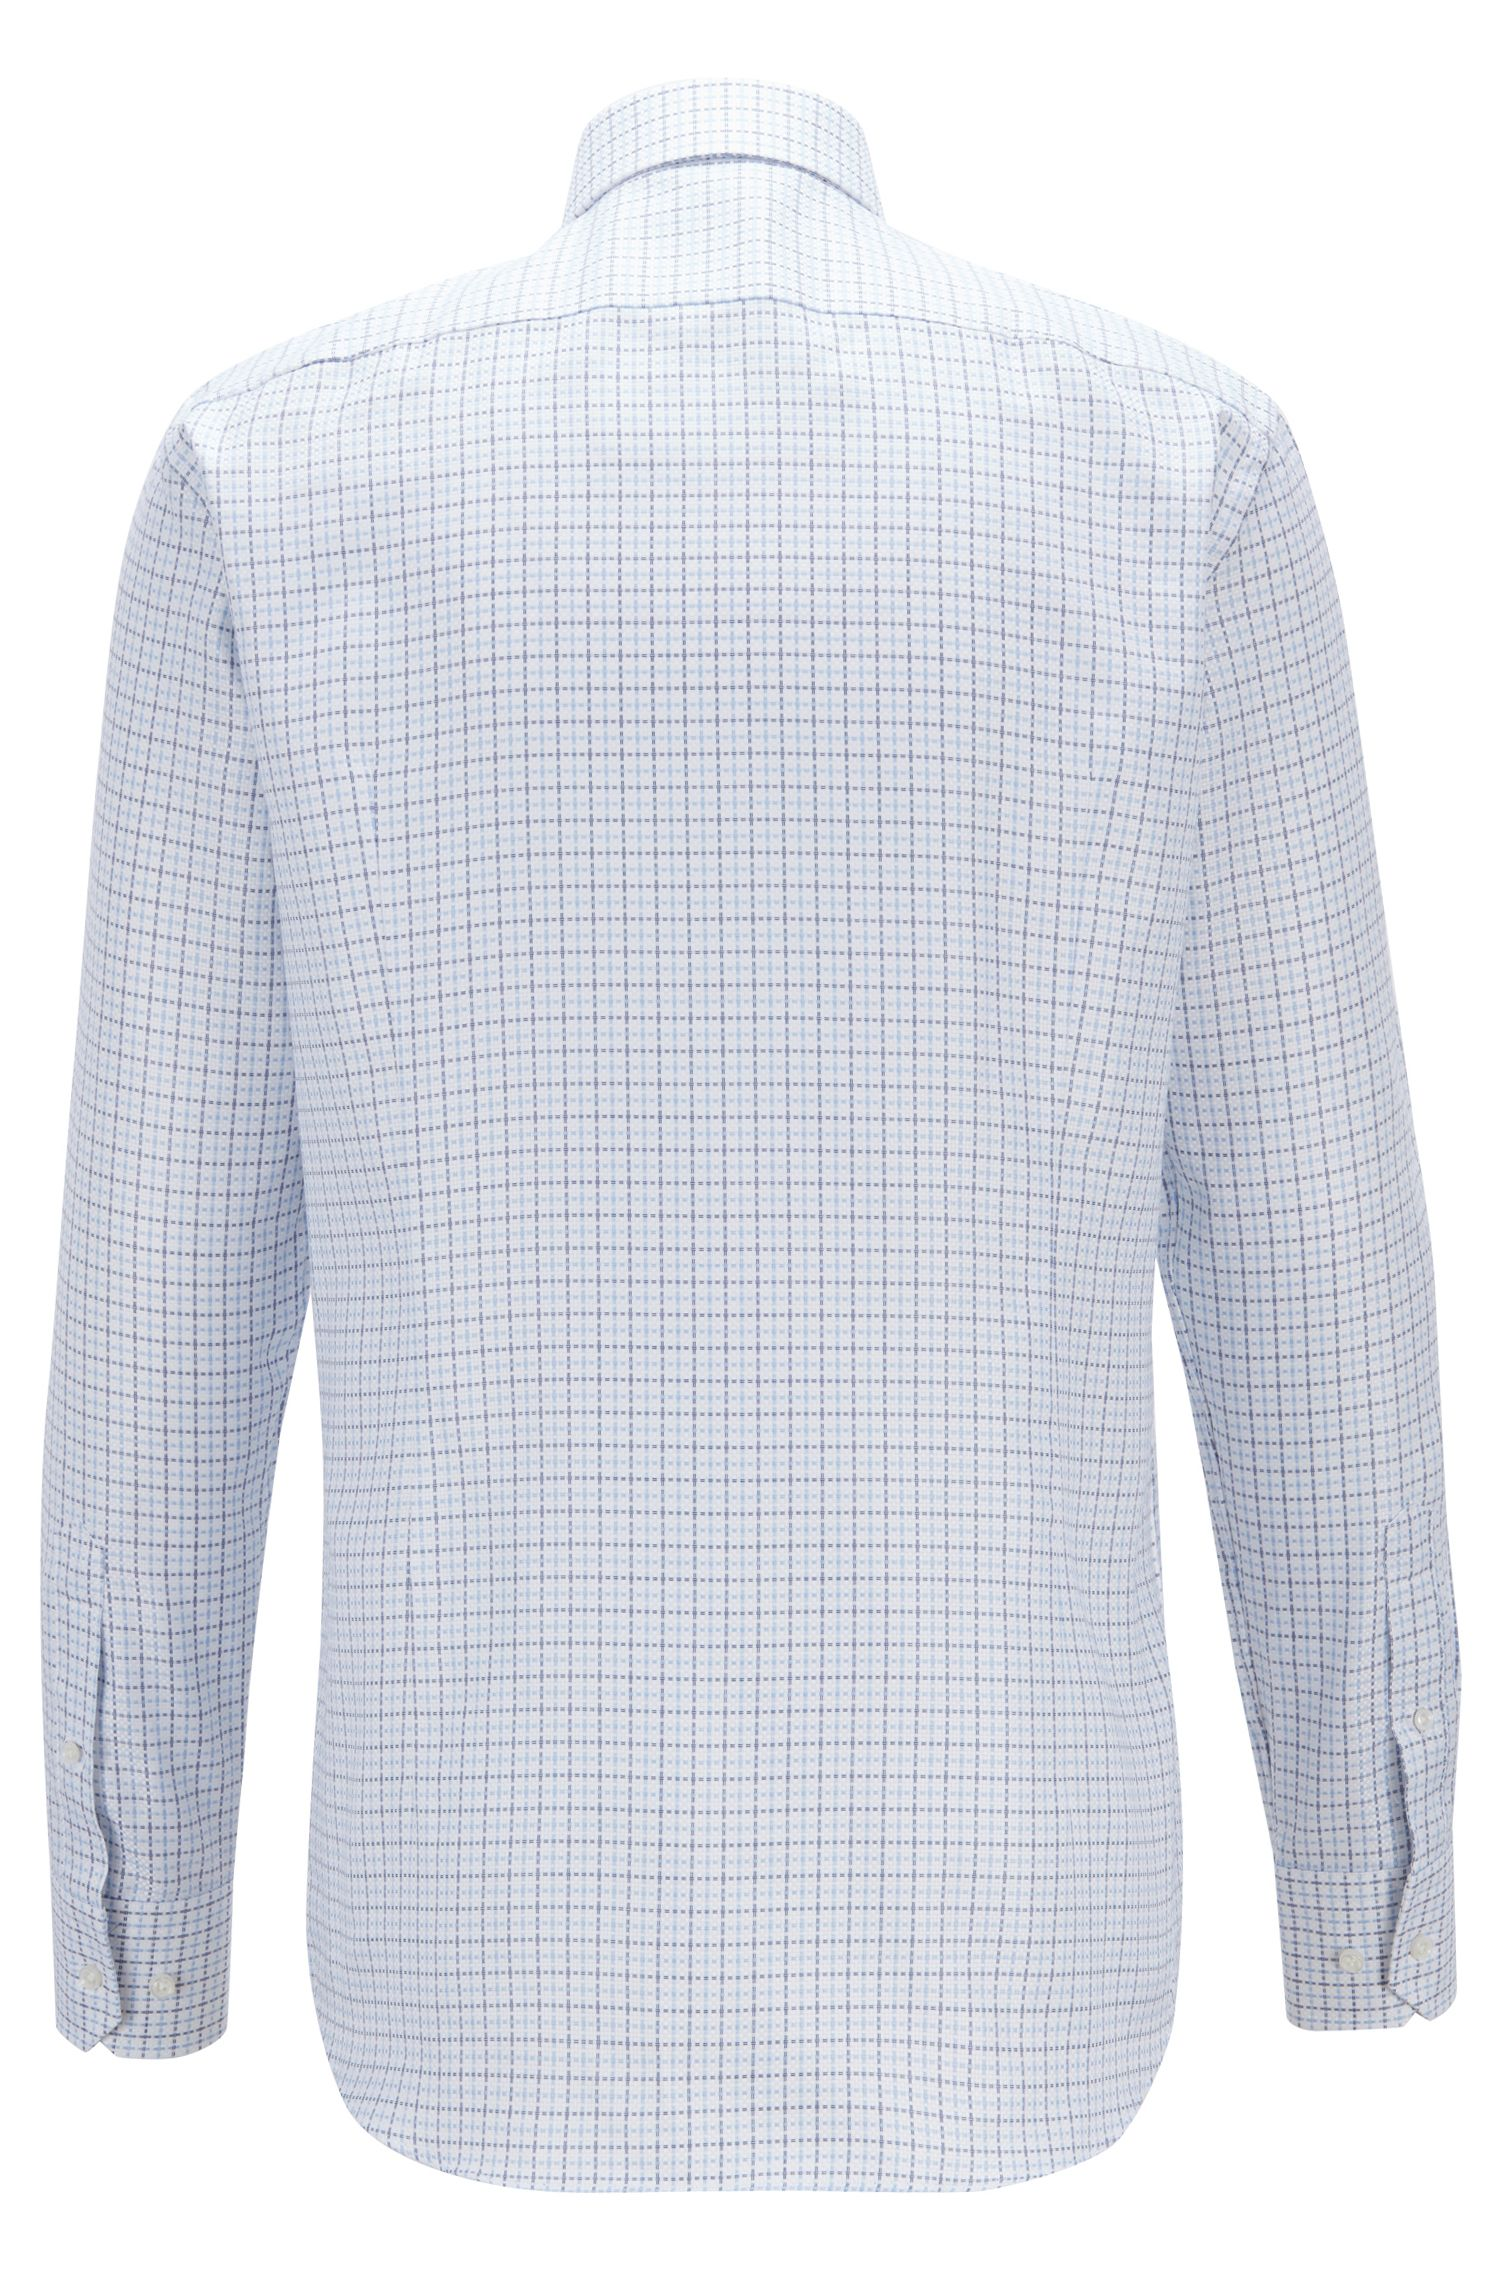 Tailored slim-fit shirt in Italian Glen-check cotton, Blue